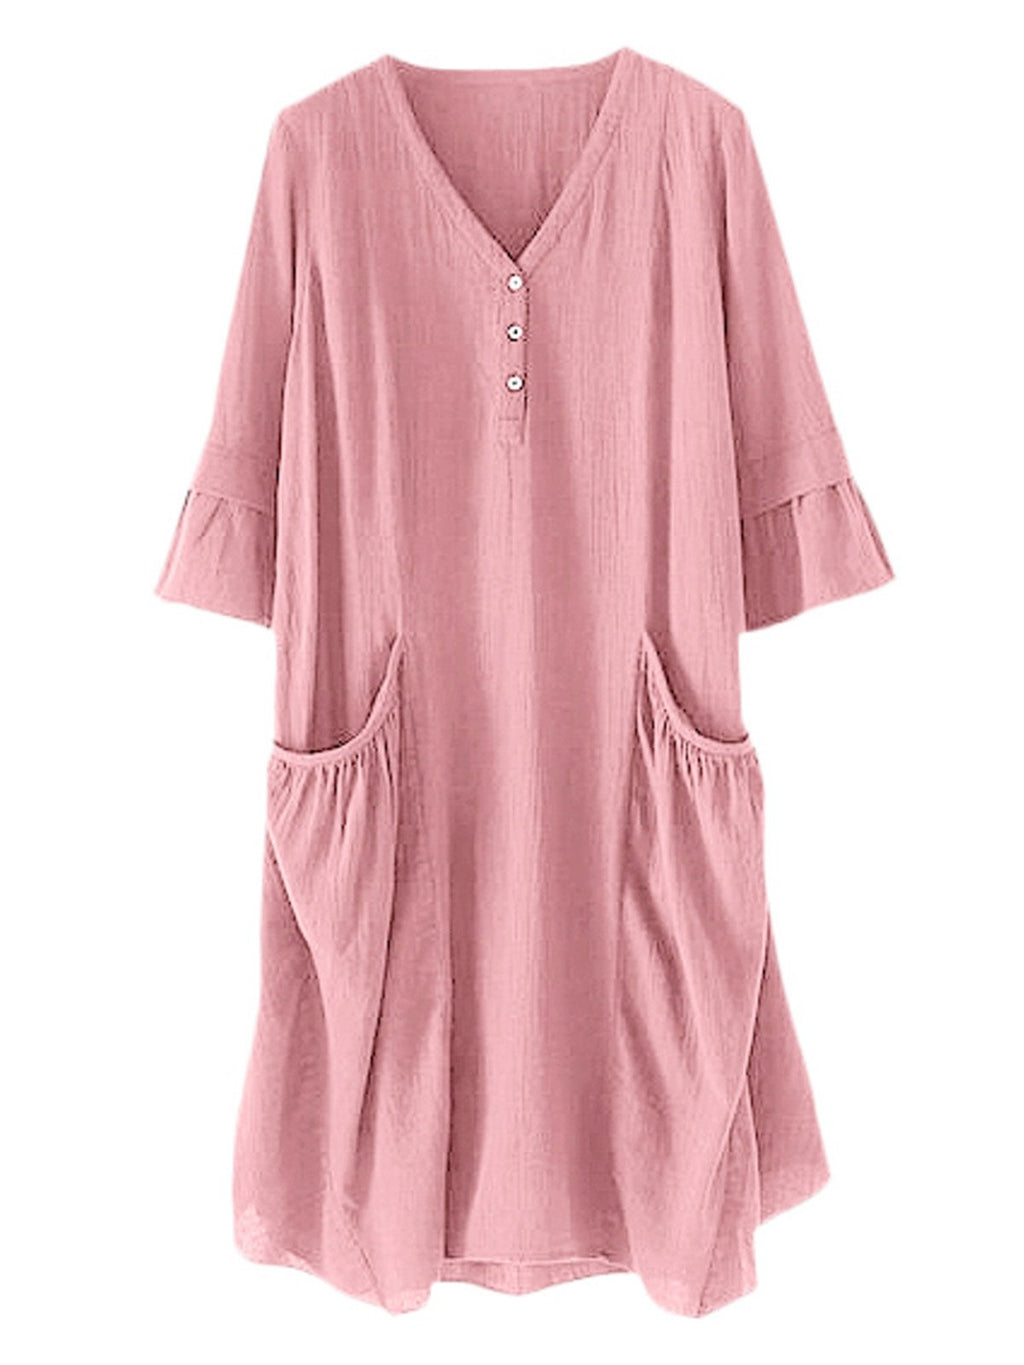 Solid Buttoned V Neck Pocket Ruffle Flare Sleeve Half-Sleeve Midi Dress